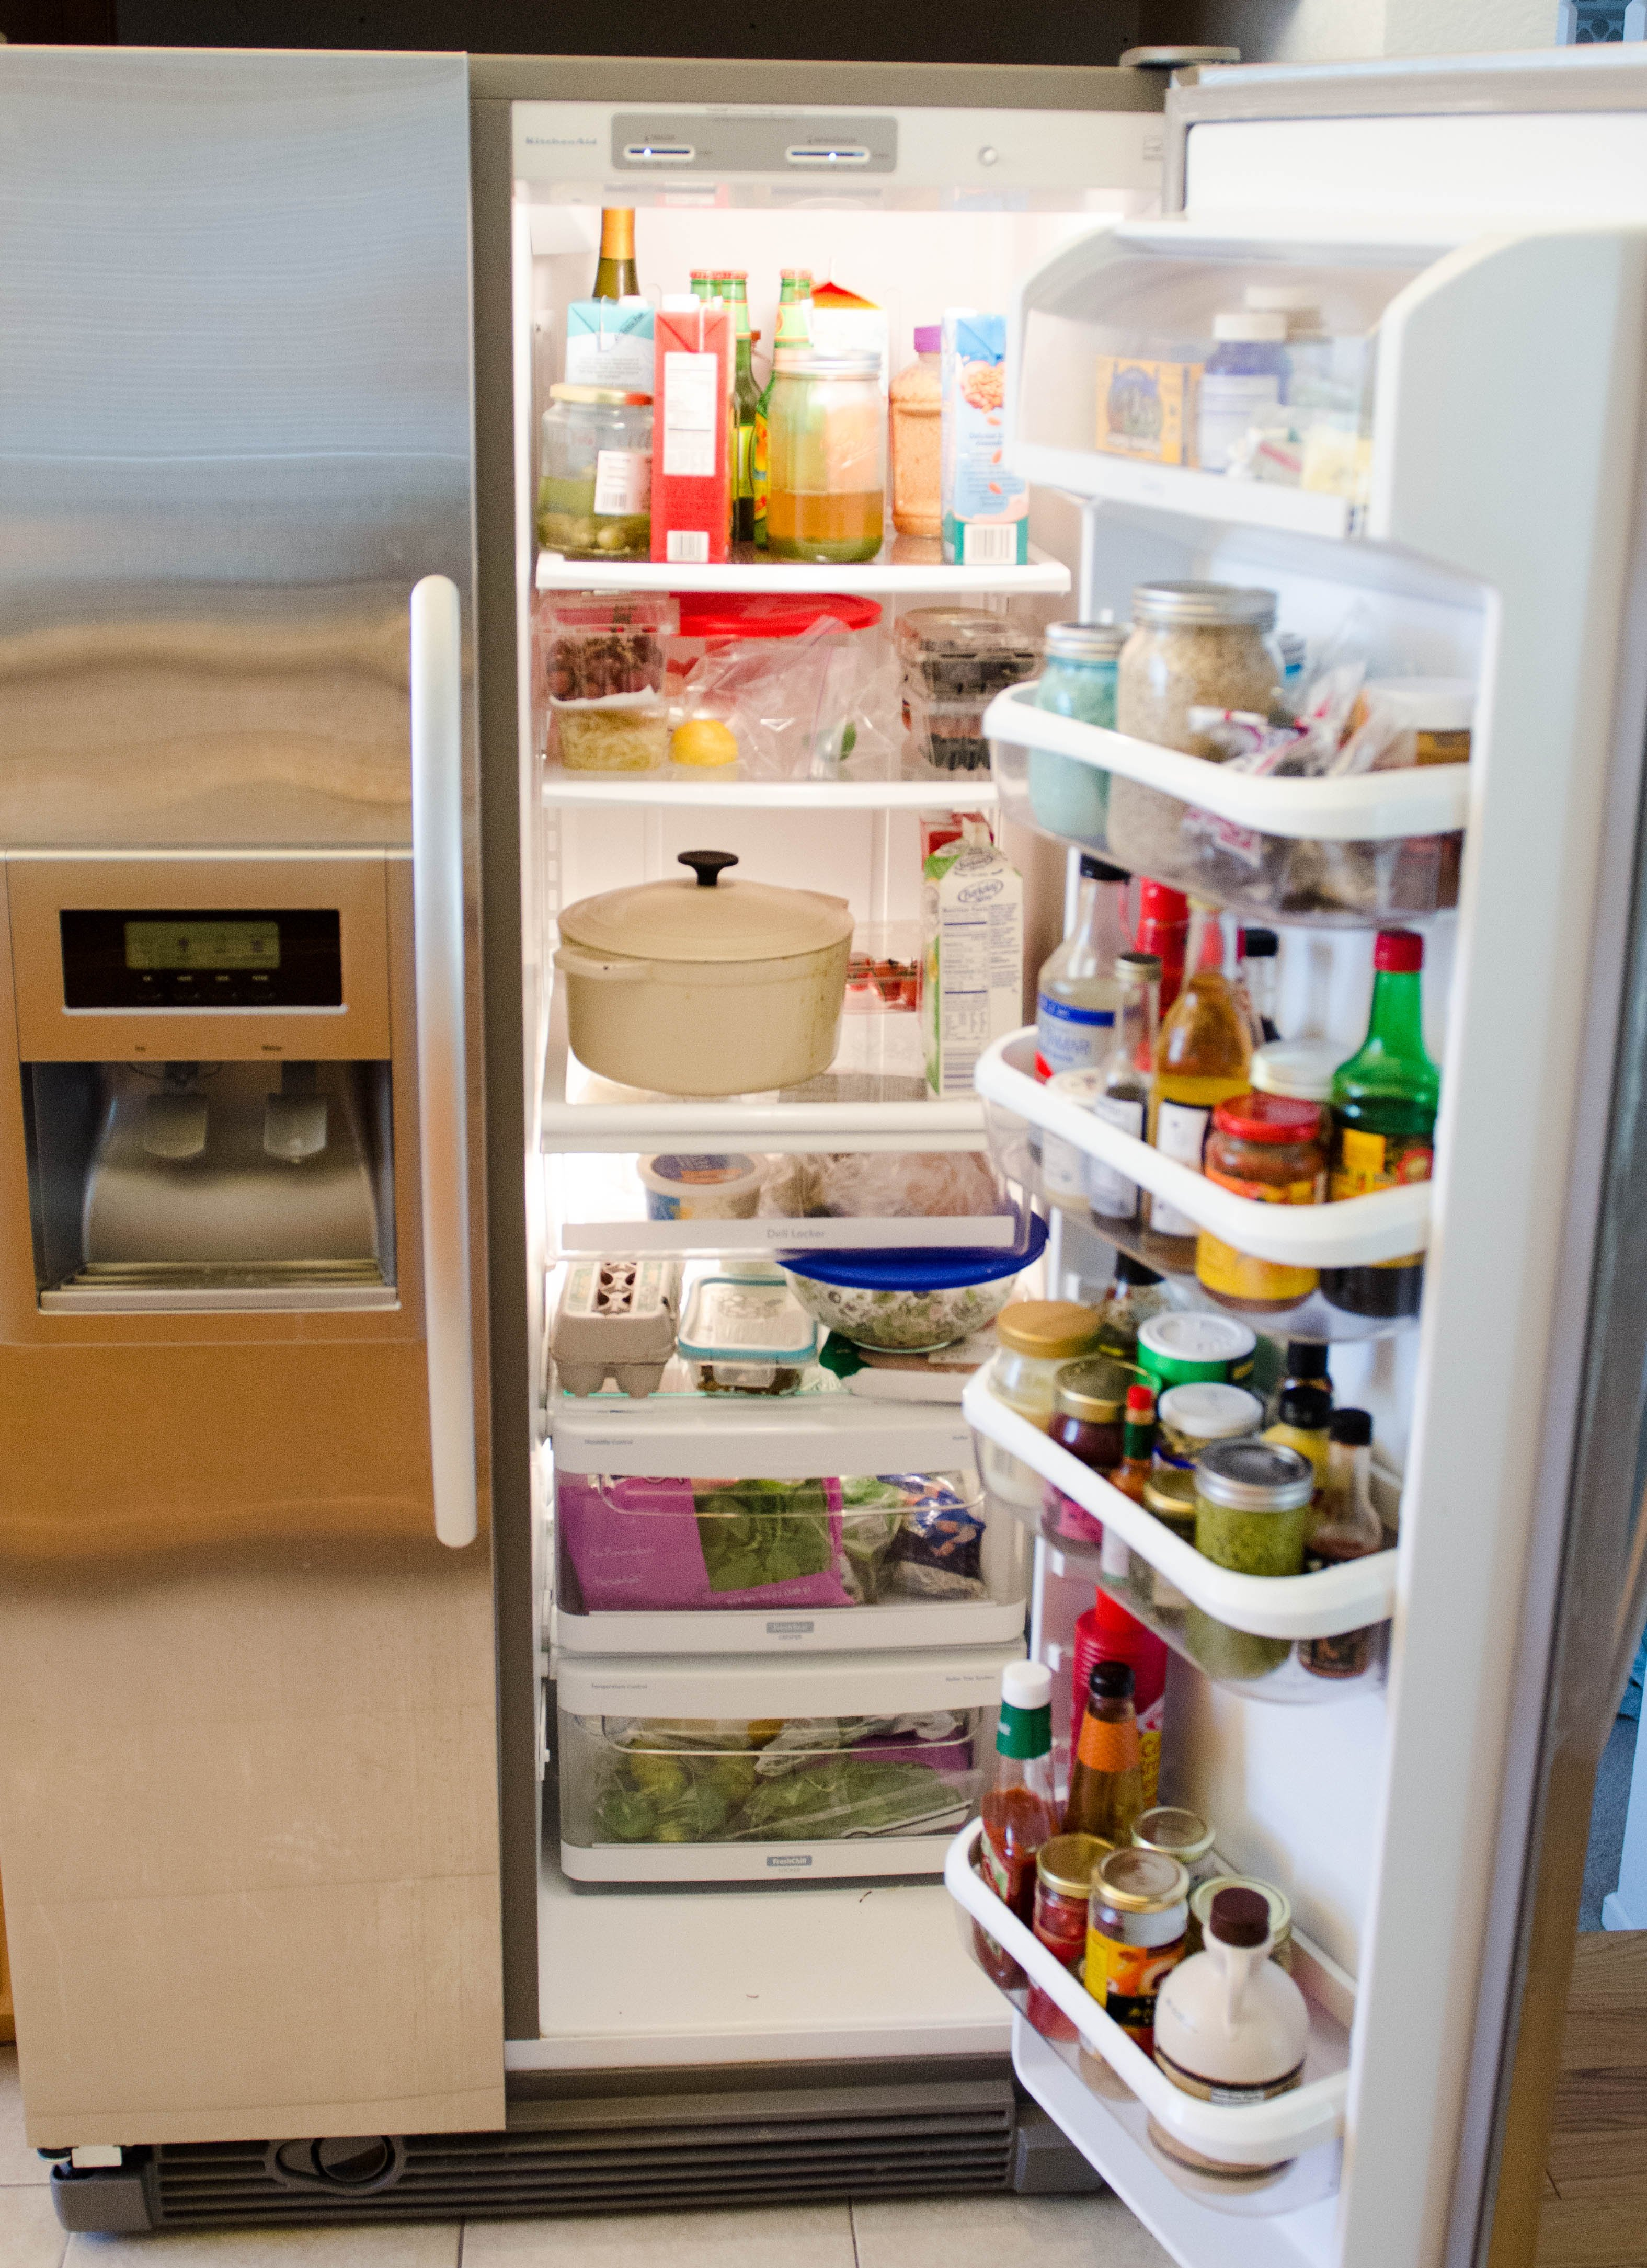 How To Clean the Refrigerator   Kitchn